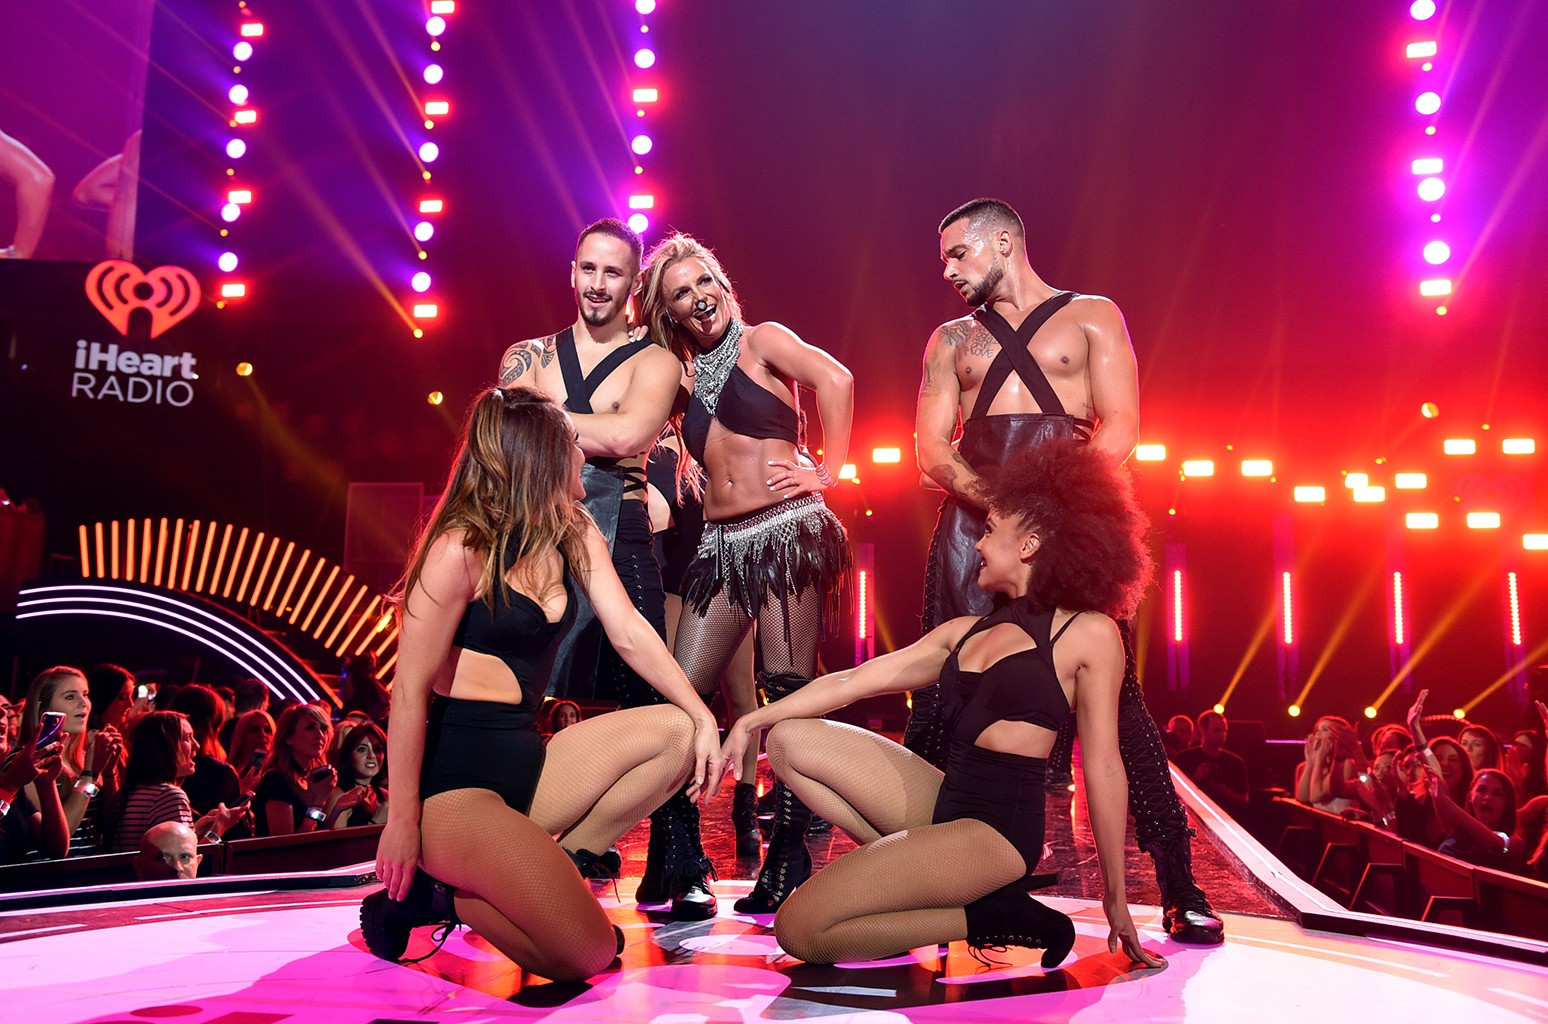 Britney Spears performs at the 2016 iHeartRadio Music Festival at T-Mobile Arena on Sept. 24, 2016 in Las Vegas.